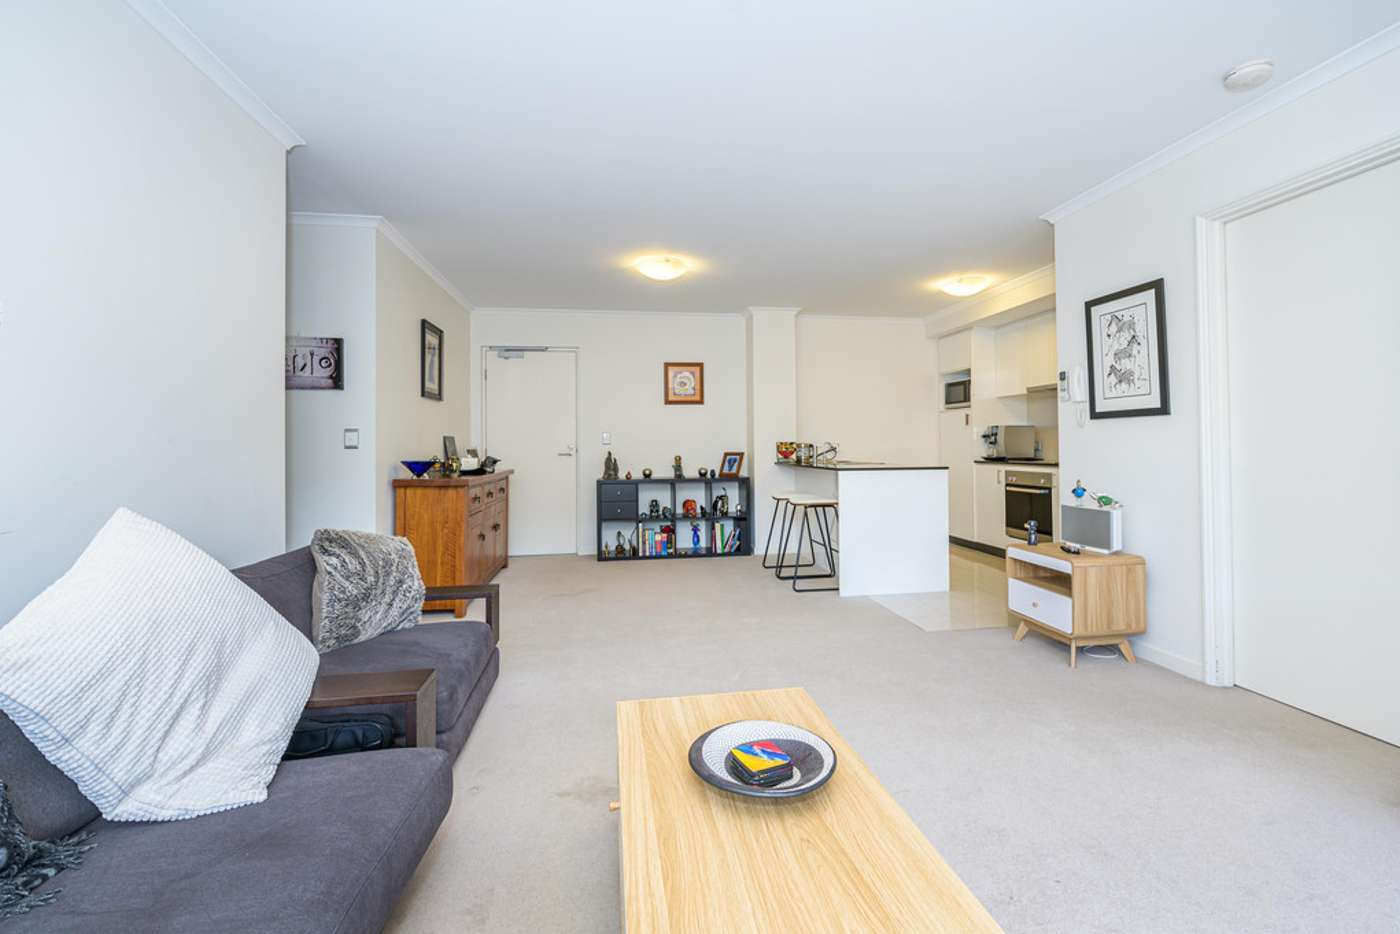 Main view of Homely apartment listing, 27/189 Swansea Street East, East Victoria Park WA 6101